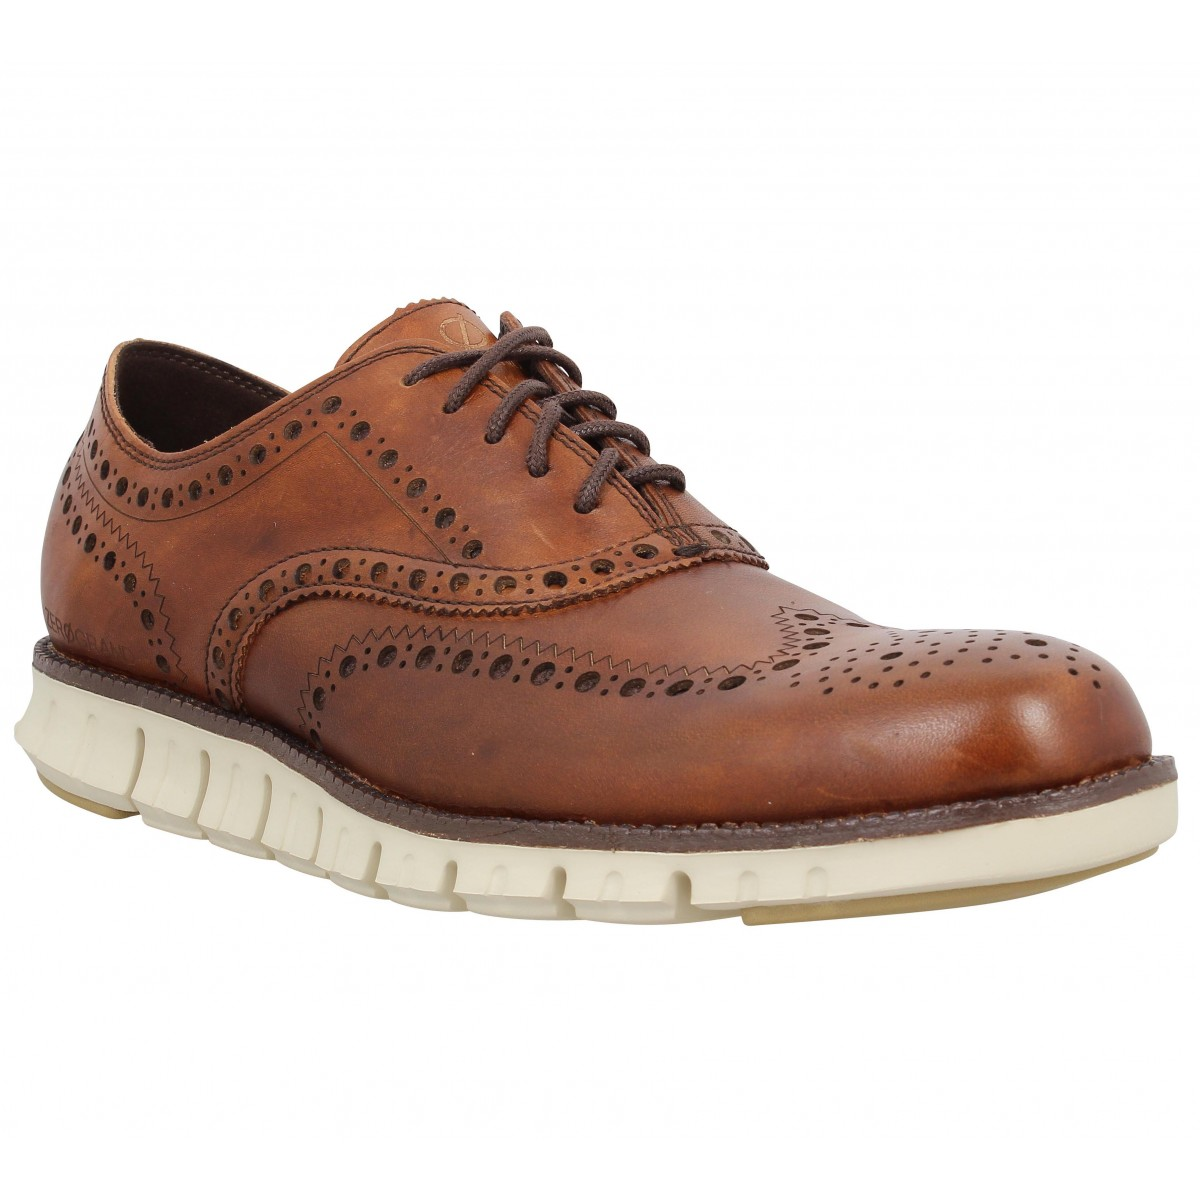 Chaussures à lacets COLE HAAN Zerogrand Wingtip Oxford Tan